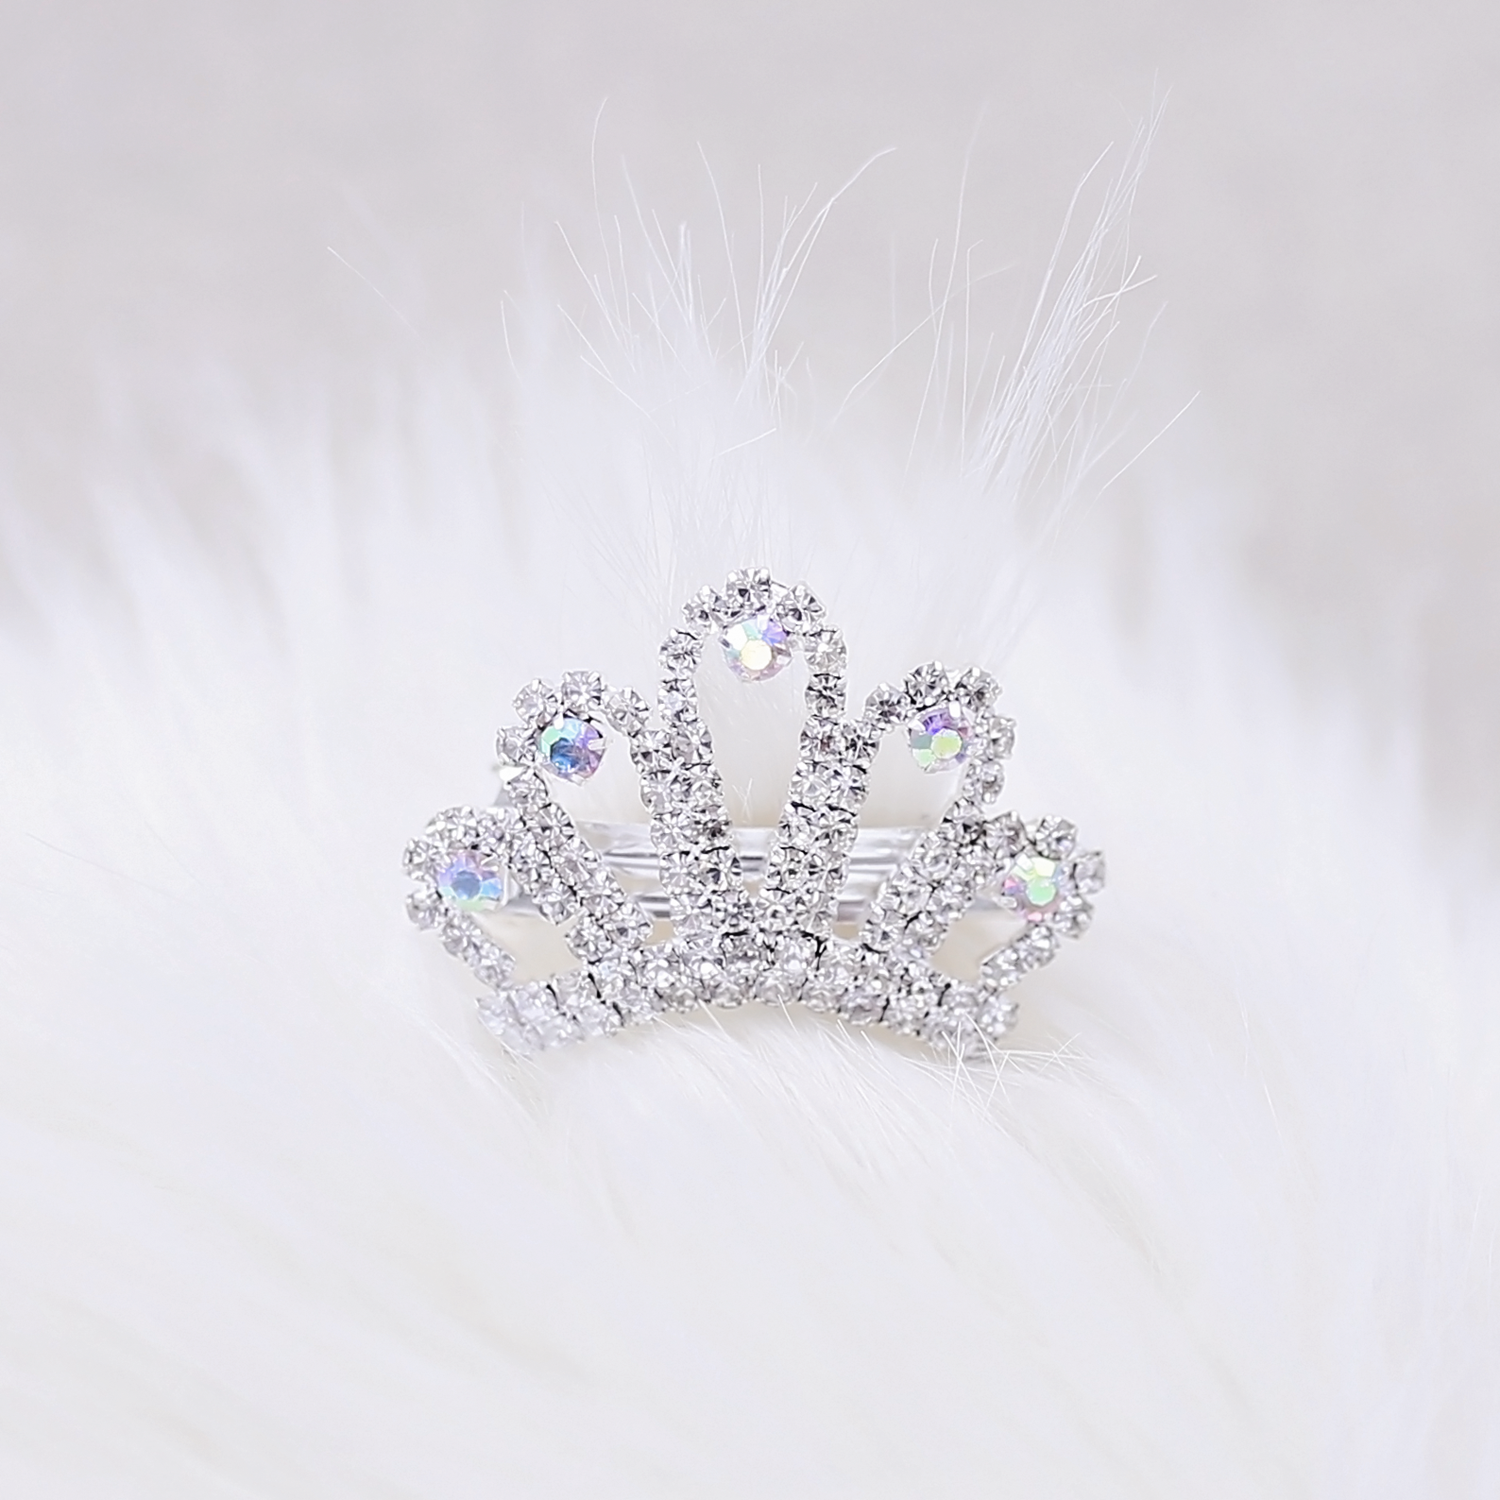 Dog Barrette - Royal Crown Dog Barrette